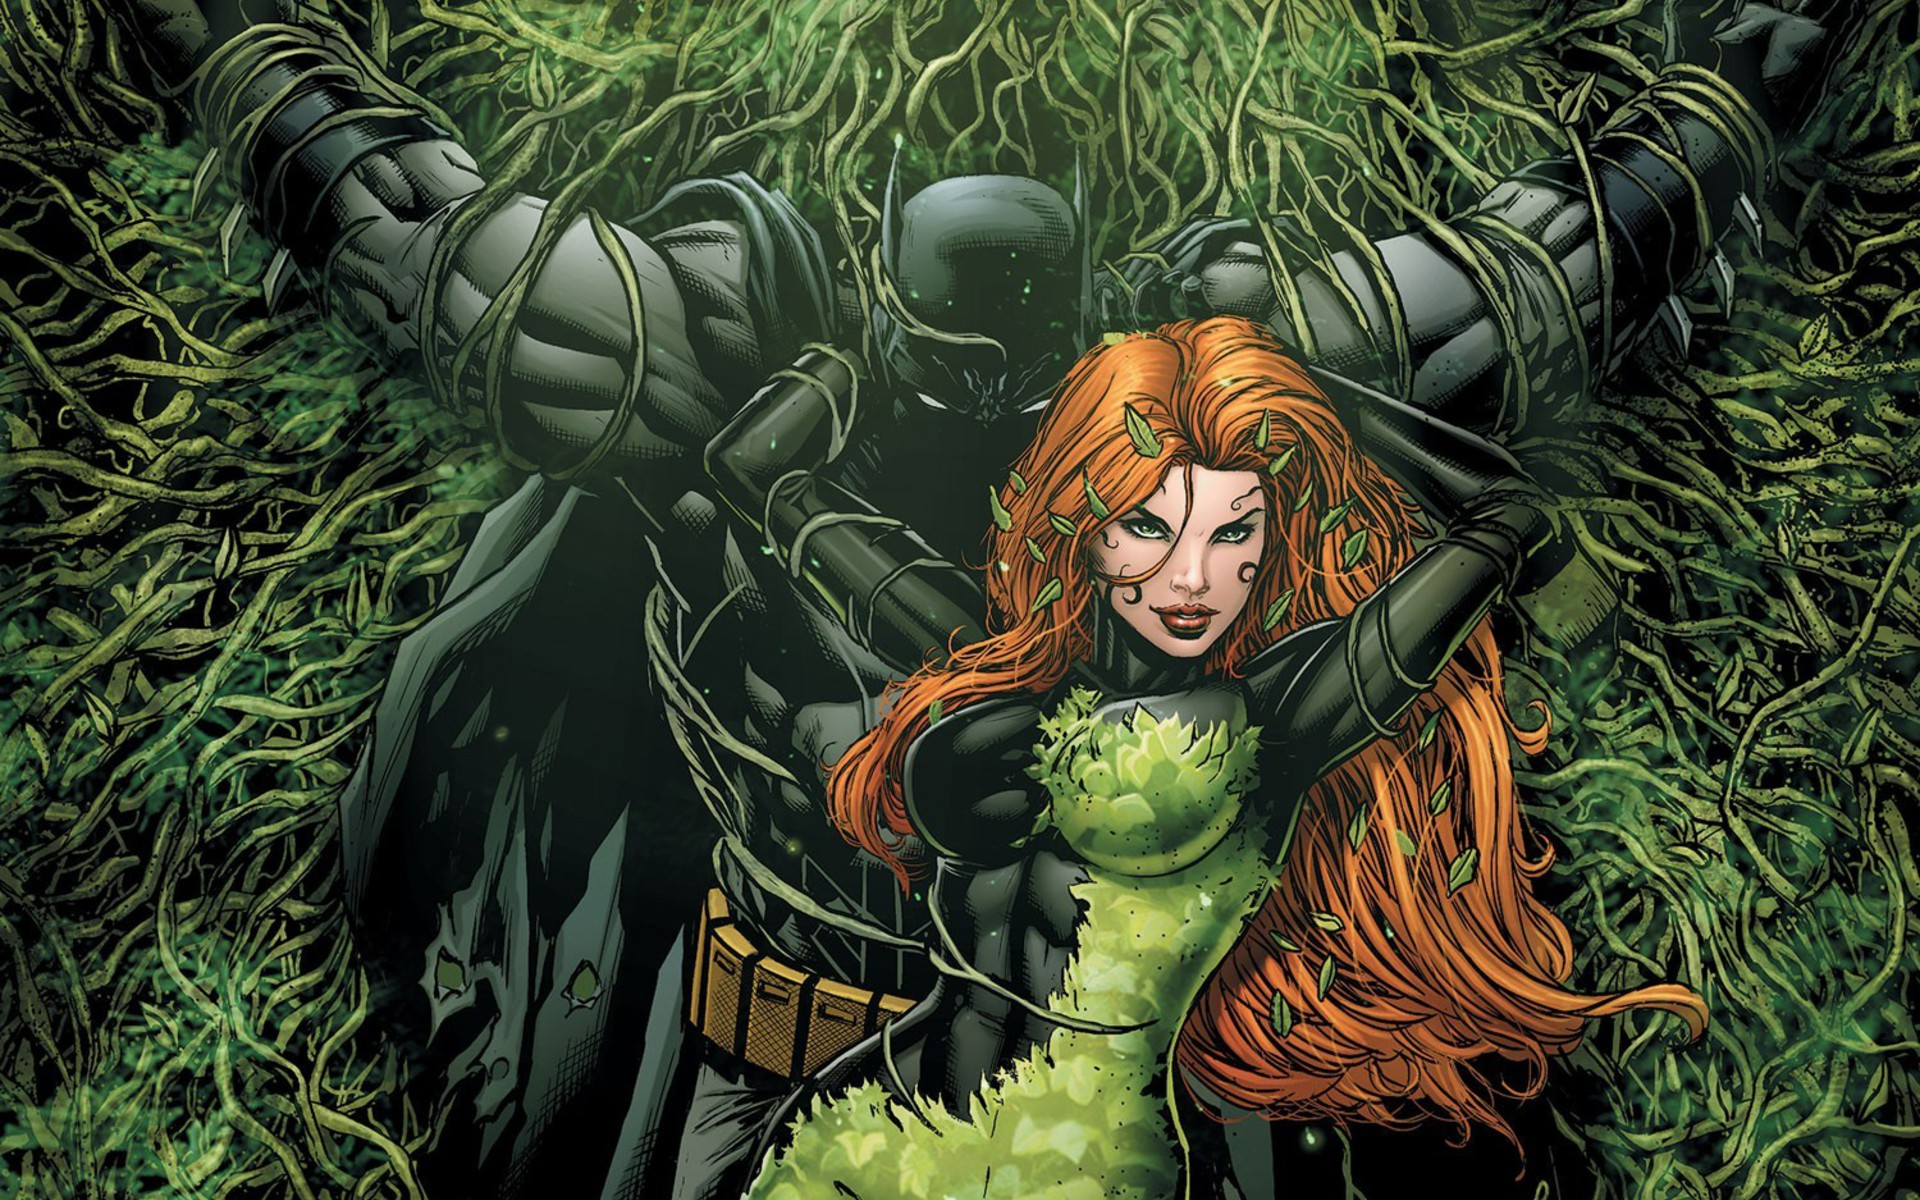 Batman Poison Ivy Wallpaper Allwallpaper In 9739 Pc En HD Wallpapers Download Free Images Wallpaper [1000image.com]